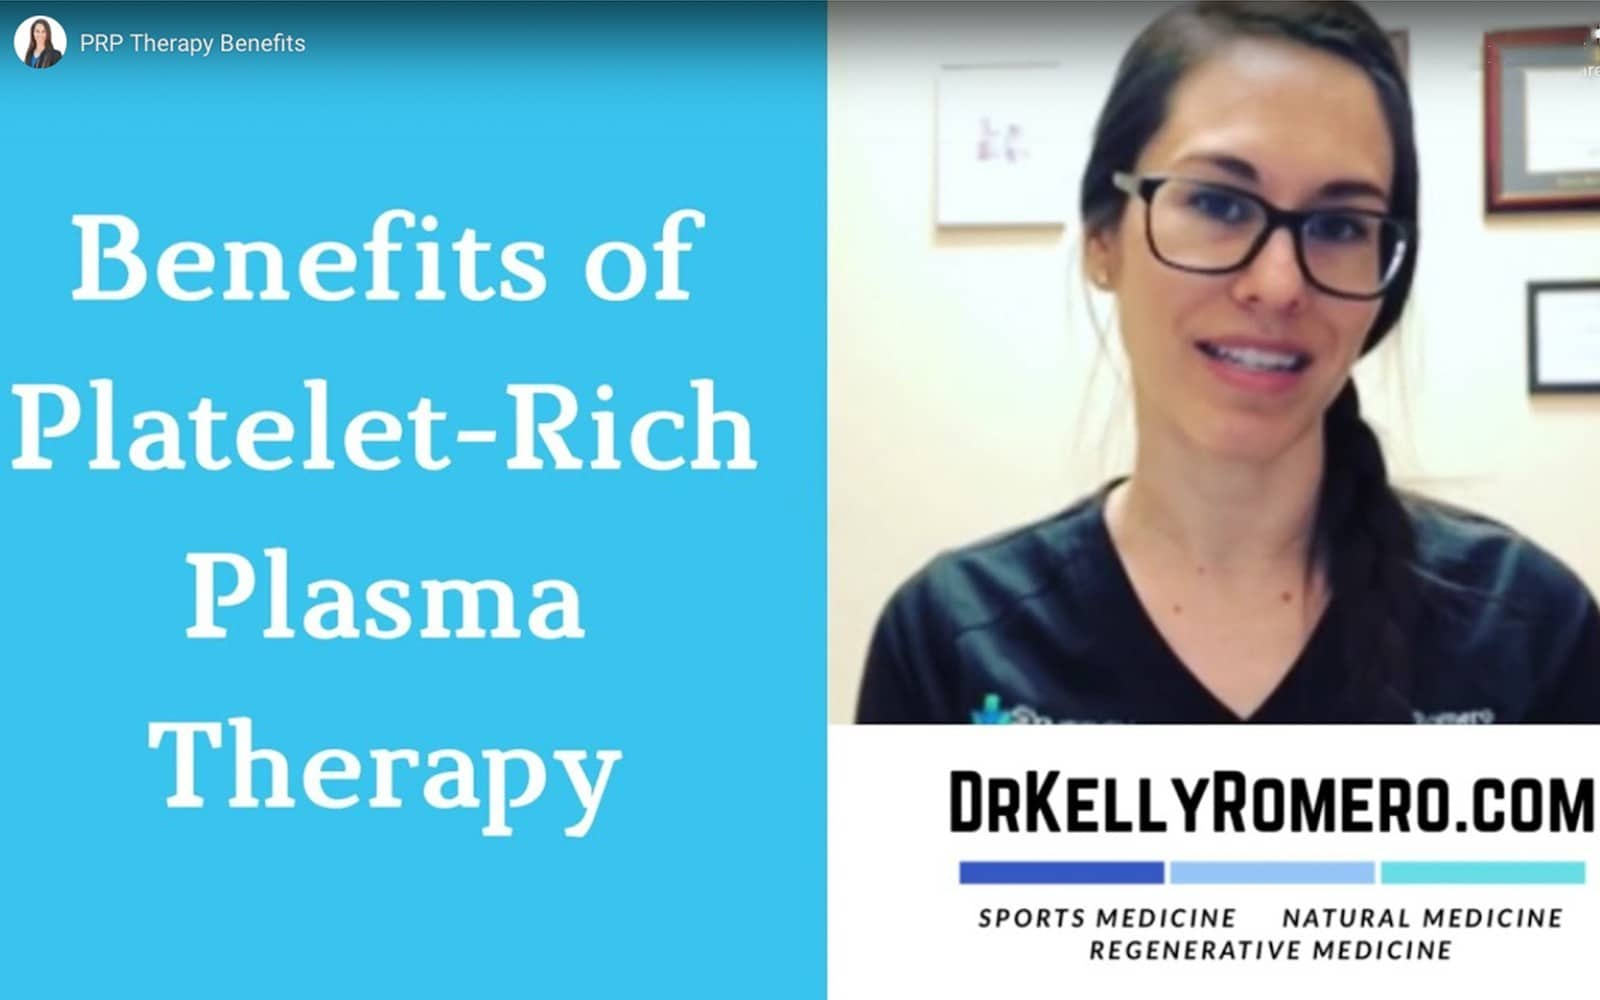 PRP Therapy Benefits - Dr. Kelly Romero